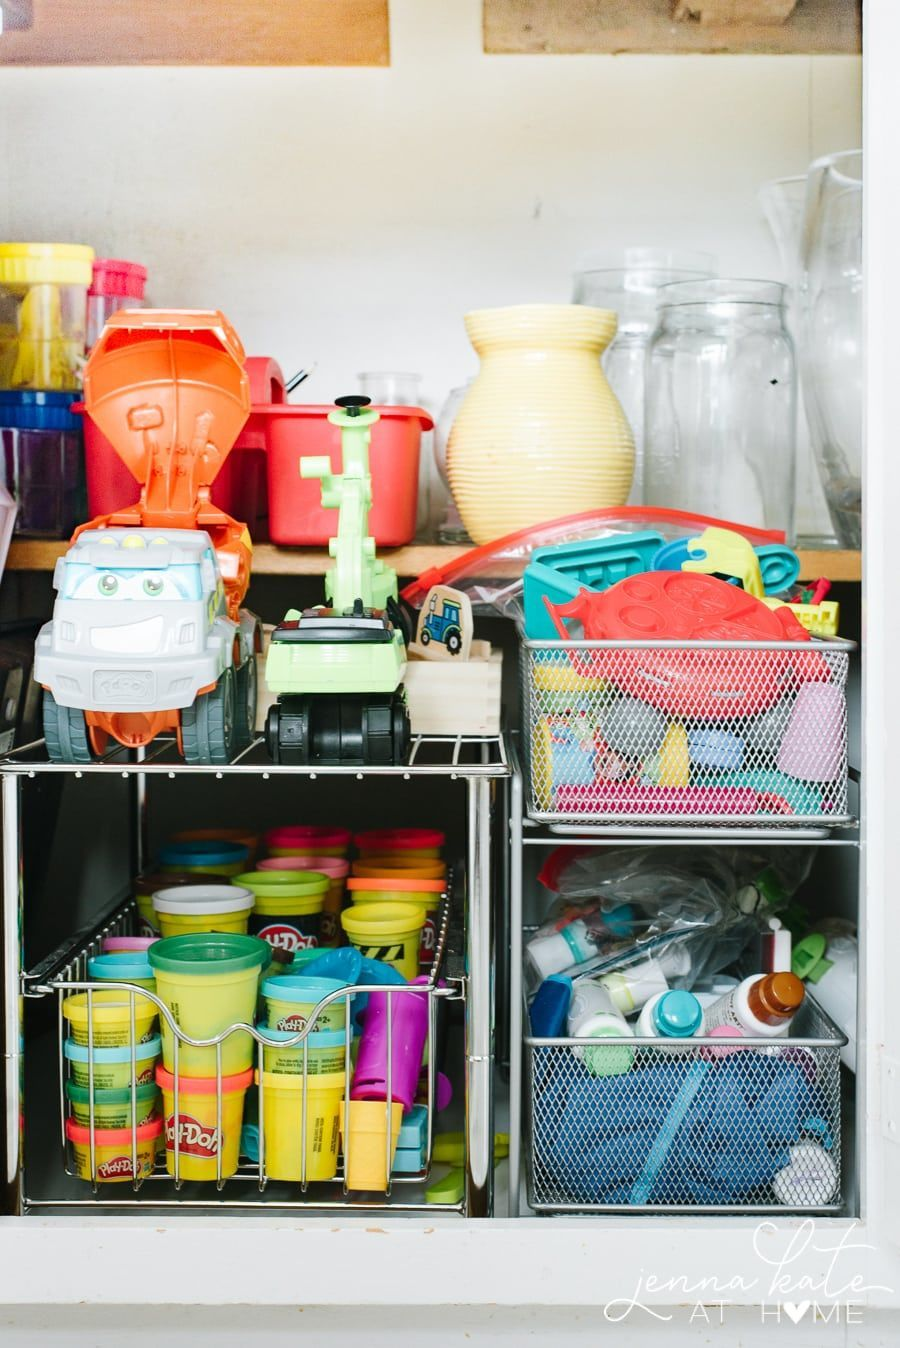 How To Organize Kitchen Cabinets Kitchen Cabinet Organization Glass Food Storage Containers Glass Food Storage